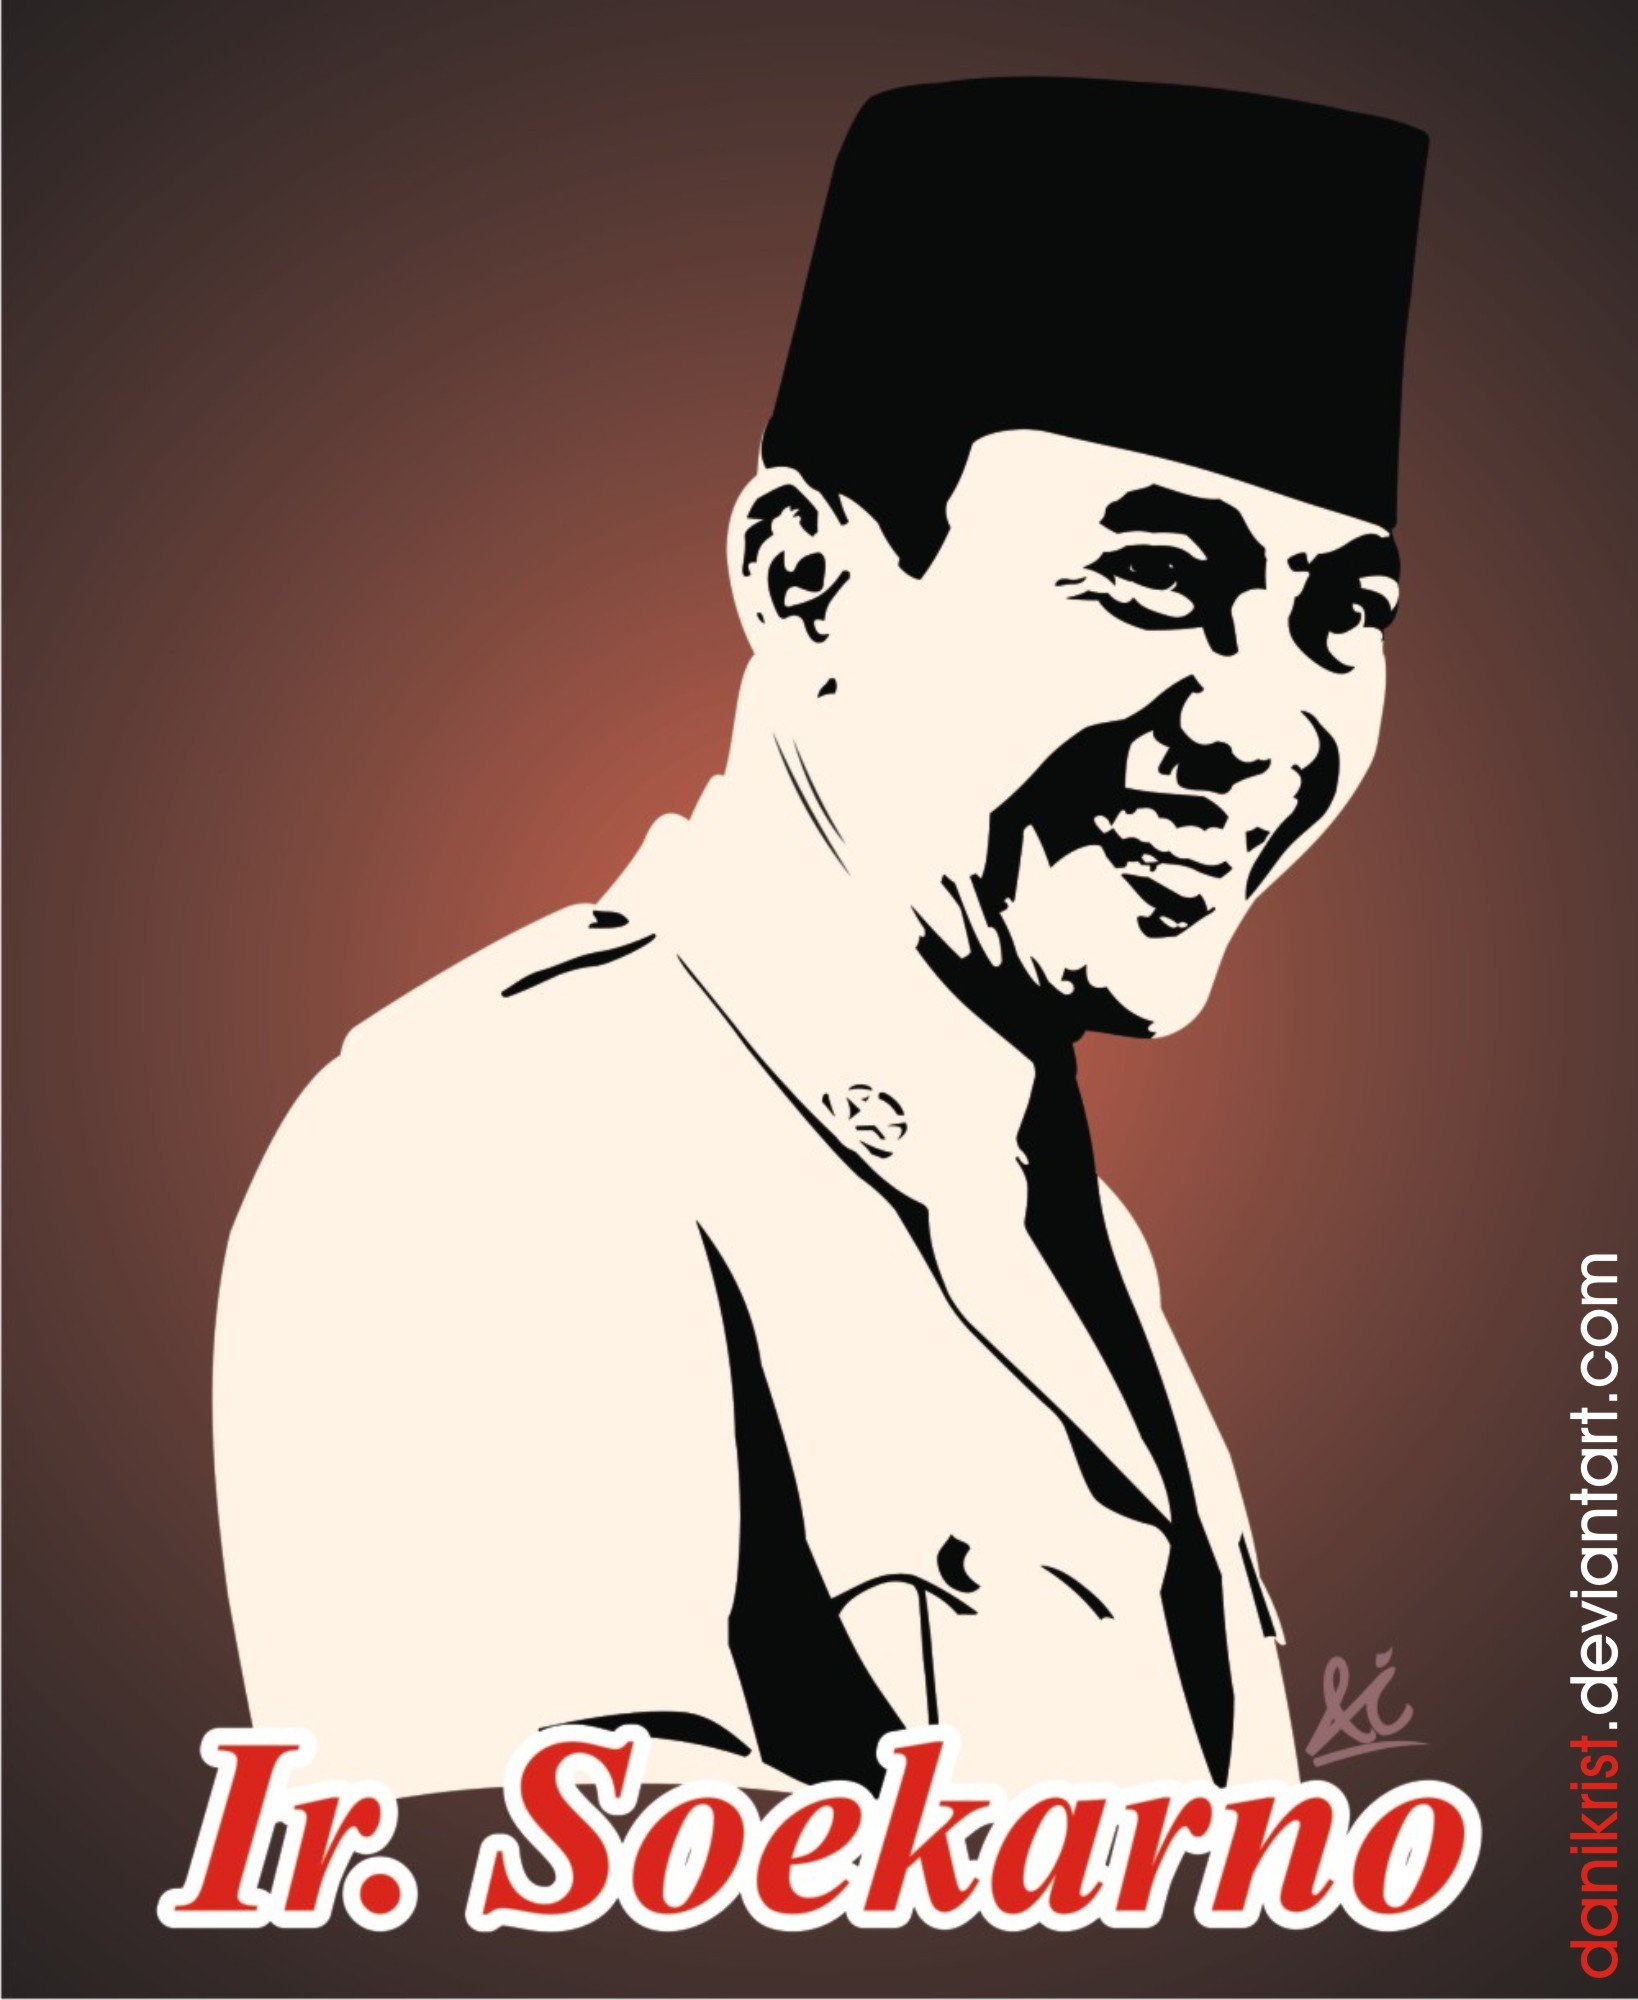 ir soekarno by danikrist on deviantart ir soekarno by danikrist on deviantart